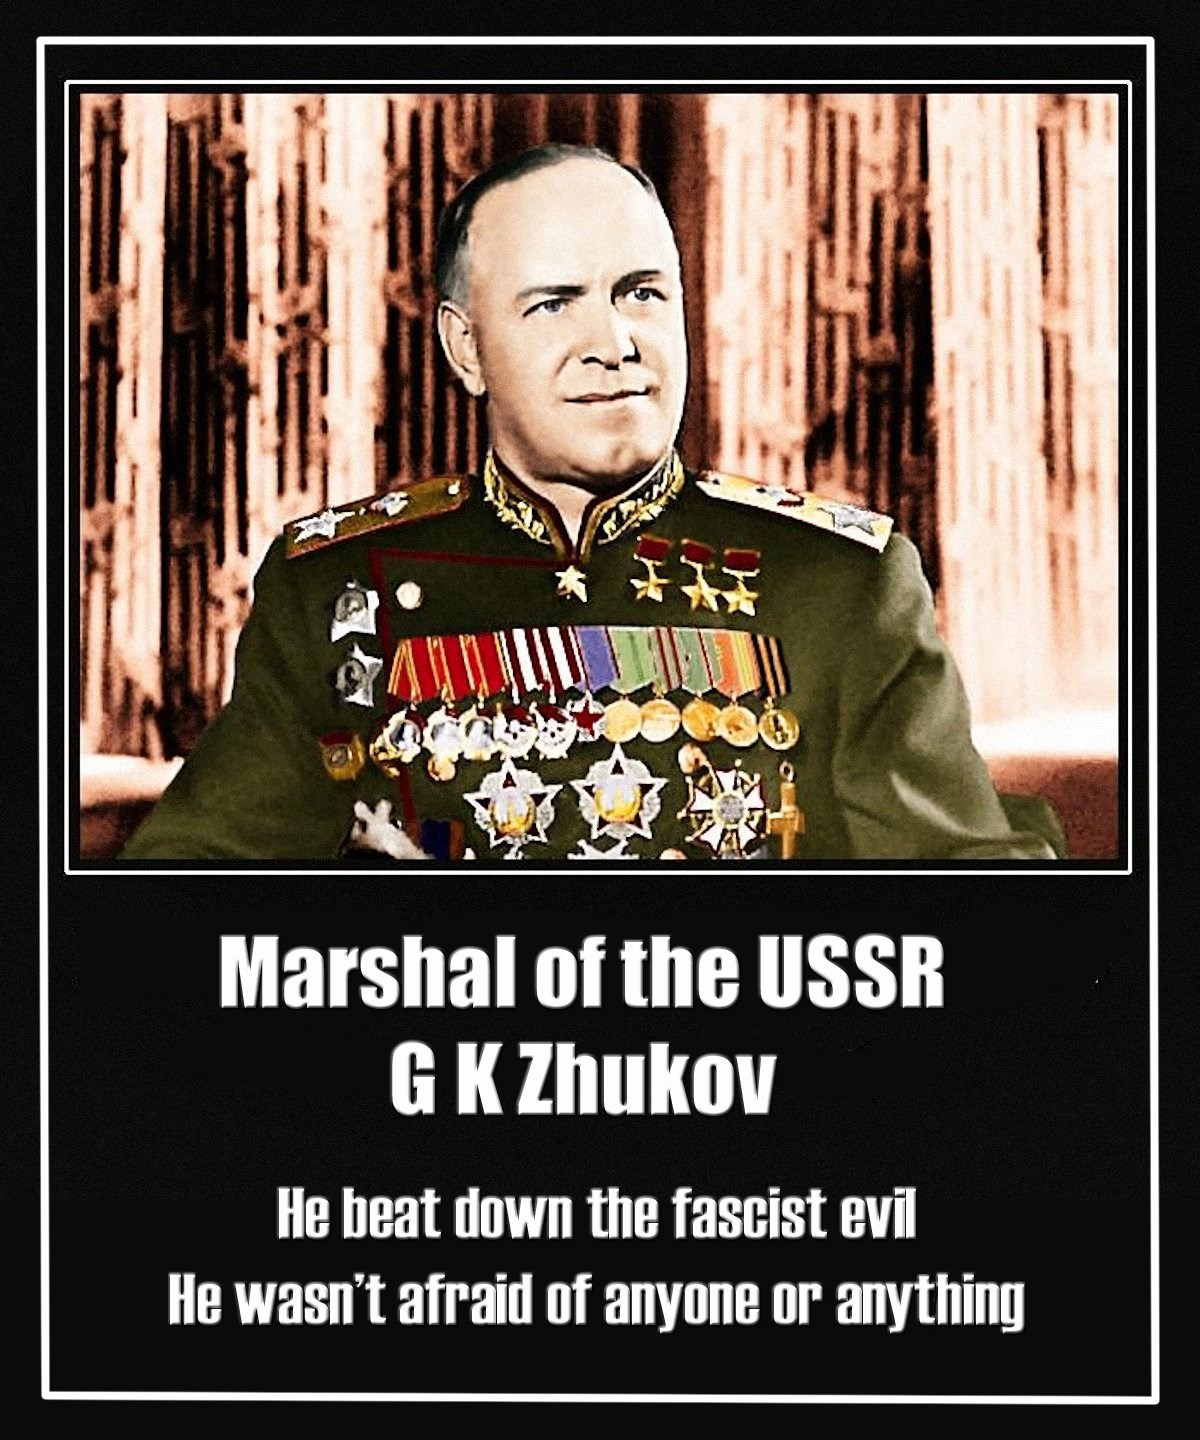 00 Know No Fear. Marshal G K Zhukov. 22.04.15